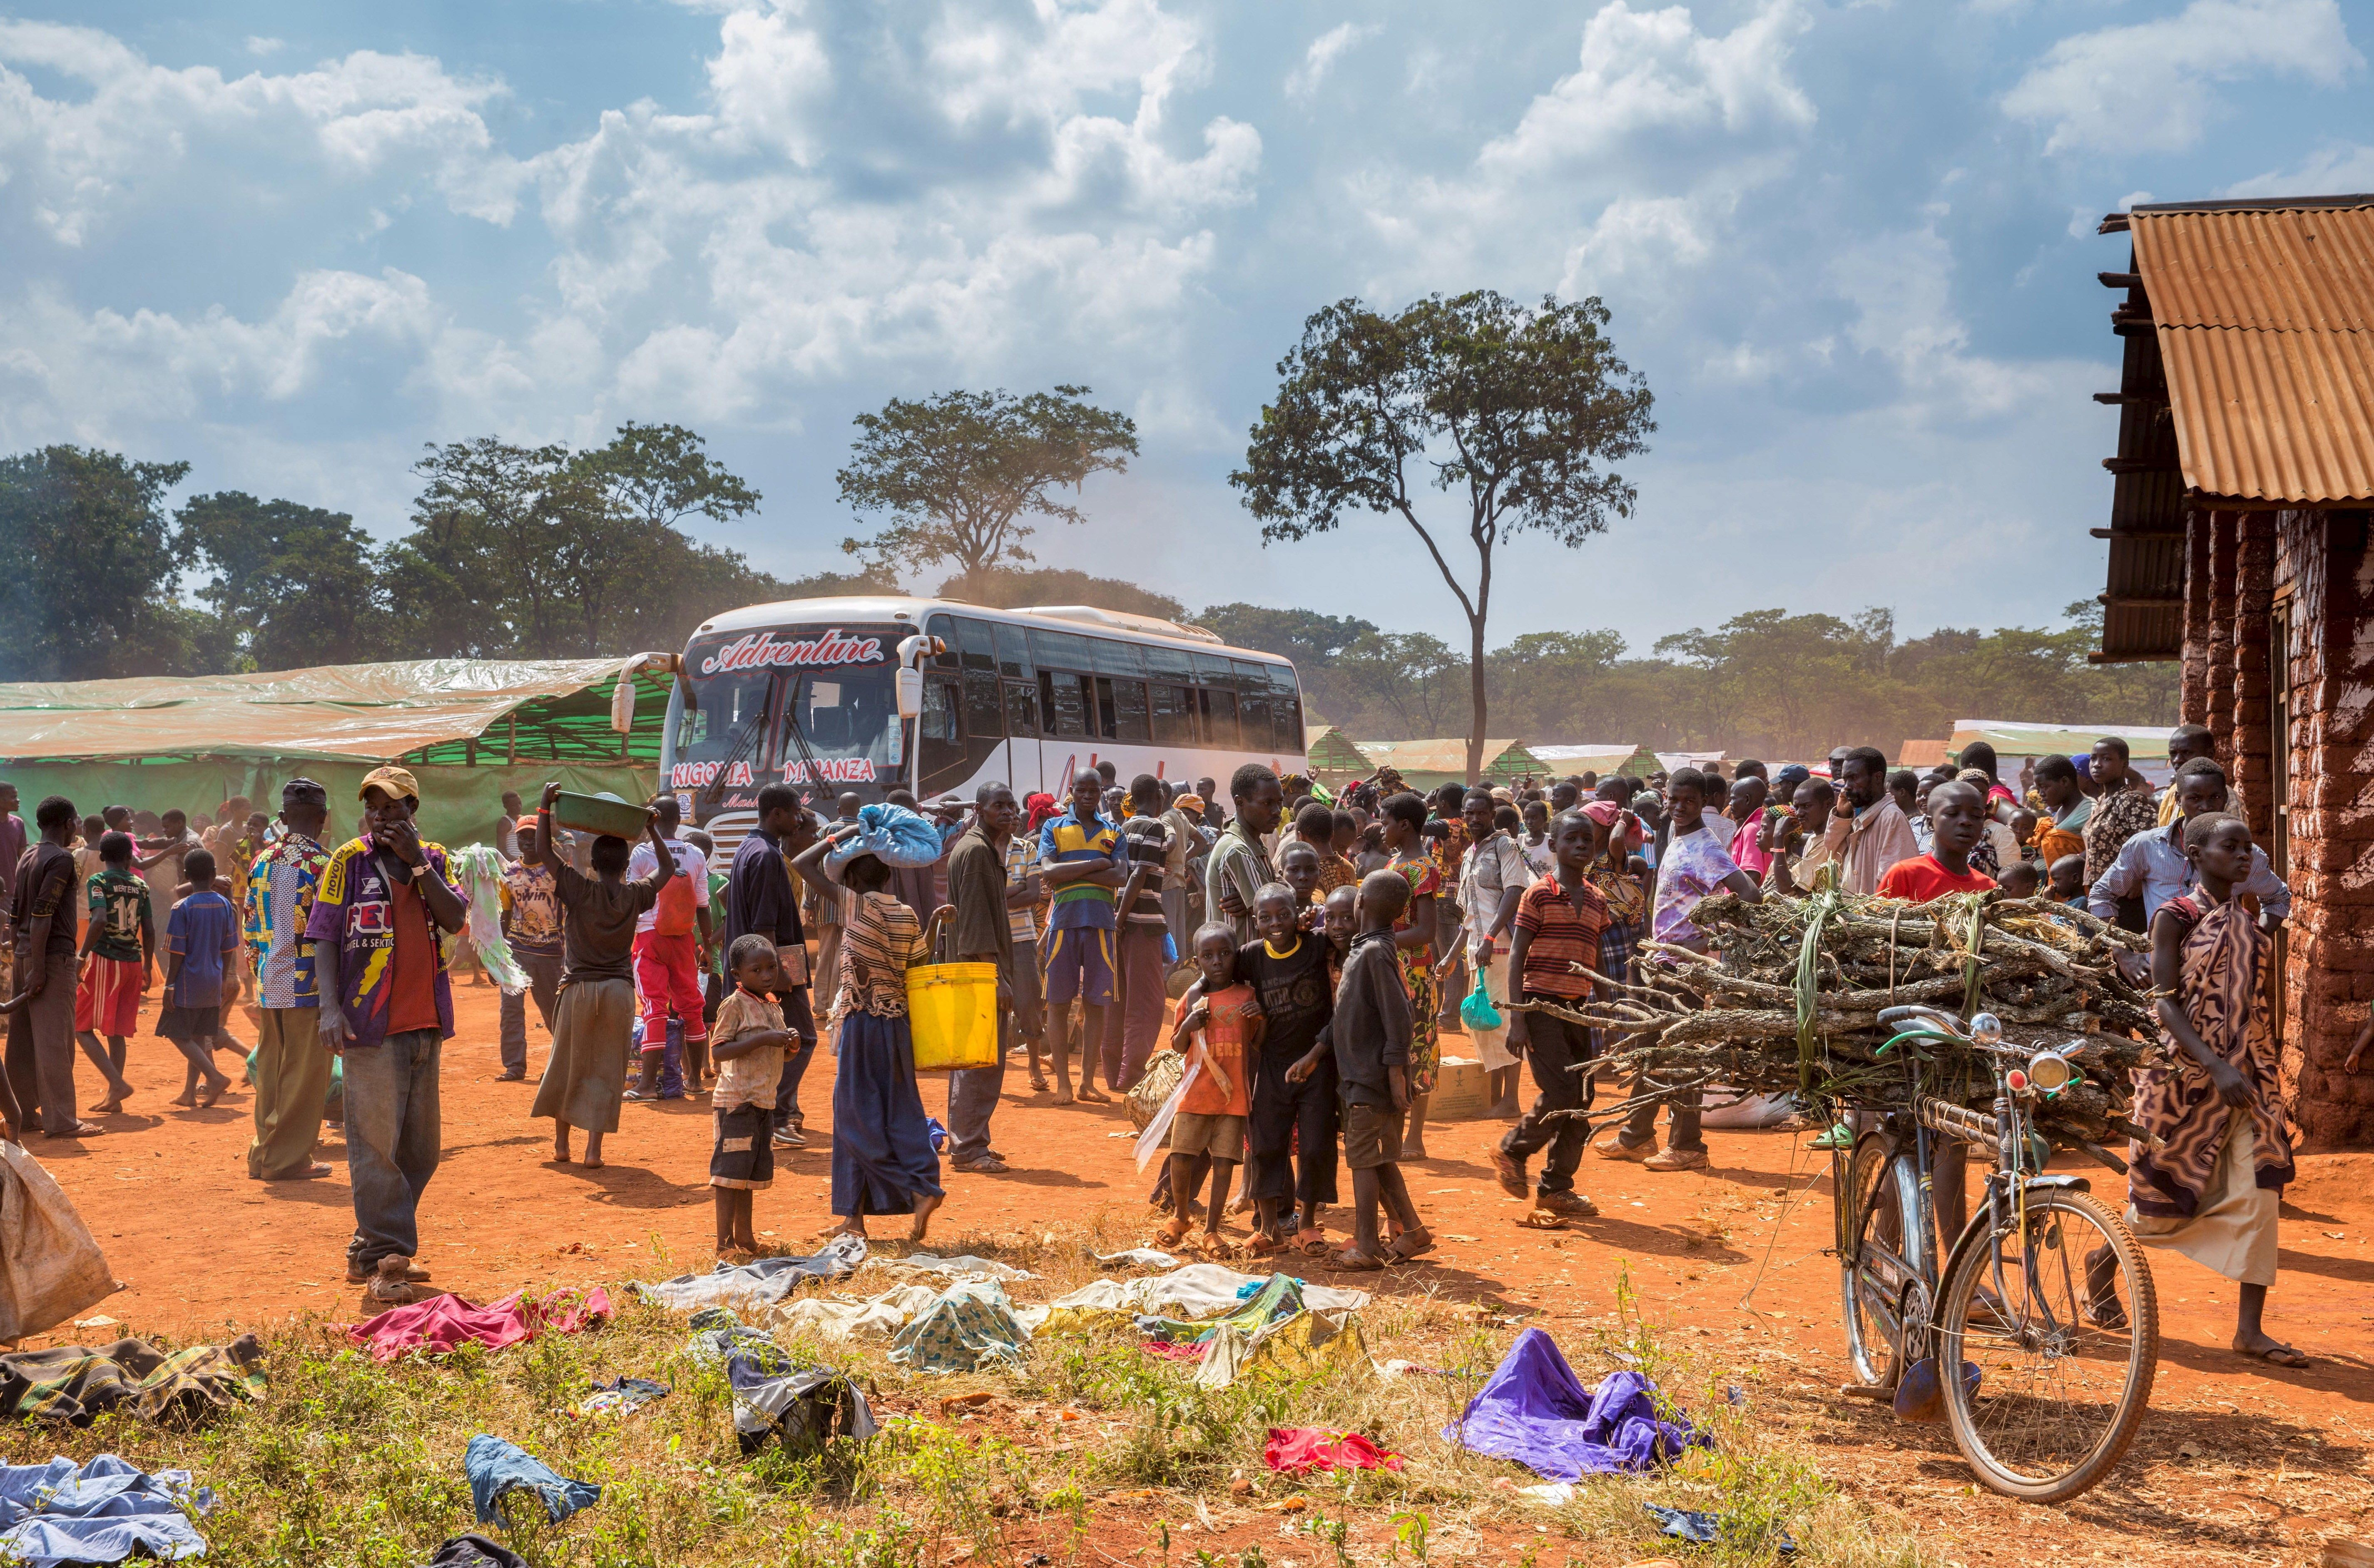 Refugees from Burundi who fled the ongoing violence and political tension arrive at the Nyarugusu refugee camp in western Tanzania in this May 28, 2015 handout photo by PLAN INTERNATIONAL. East African leaders will meet on Sunday to discuss the crisis in Burundi as violent clashes between police and anti-government protesters continue and the opposition has boycotted talks to resolve the stand-off. Picture taken May 28, 2015. REUTERS/Sala Lewis/PLAN INTERNATIONAL/Handout via Reuters   ATTENTION EDITORS - THIS PICTURE WAS PROVIDED BY A THIRD PARTY. REUTERS IS UNABLE TO INDEPENDENTLY VERIFY THE AUTHENTICITY, CONTENT, LOCATION OR DATE OF THIS IMAGE. FOR EDITORIAL USE ONLY. NOT FOR SALE FOR MARKETING OR ADVERTISING CAMPAIGNS.